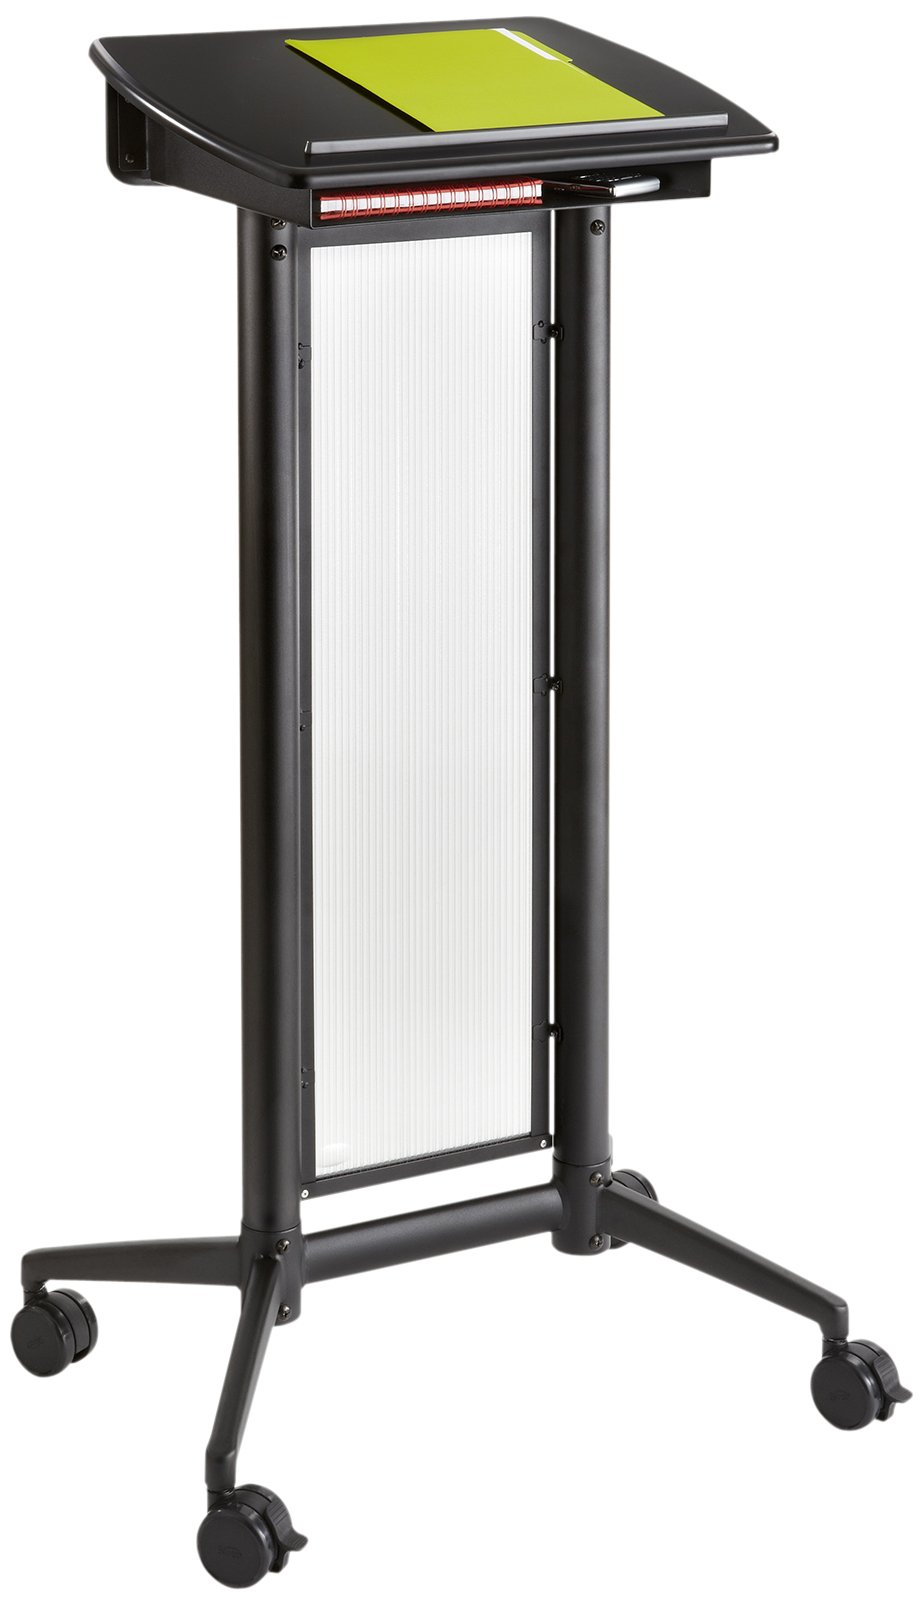 Safco Products 8912BL Impromptu Lectern, Black by Safco Products